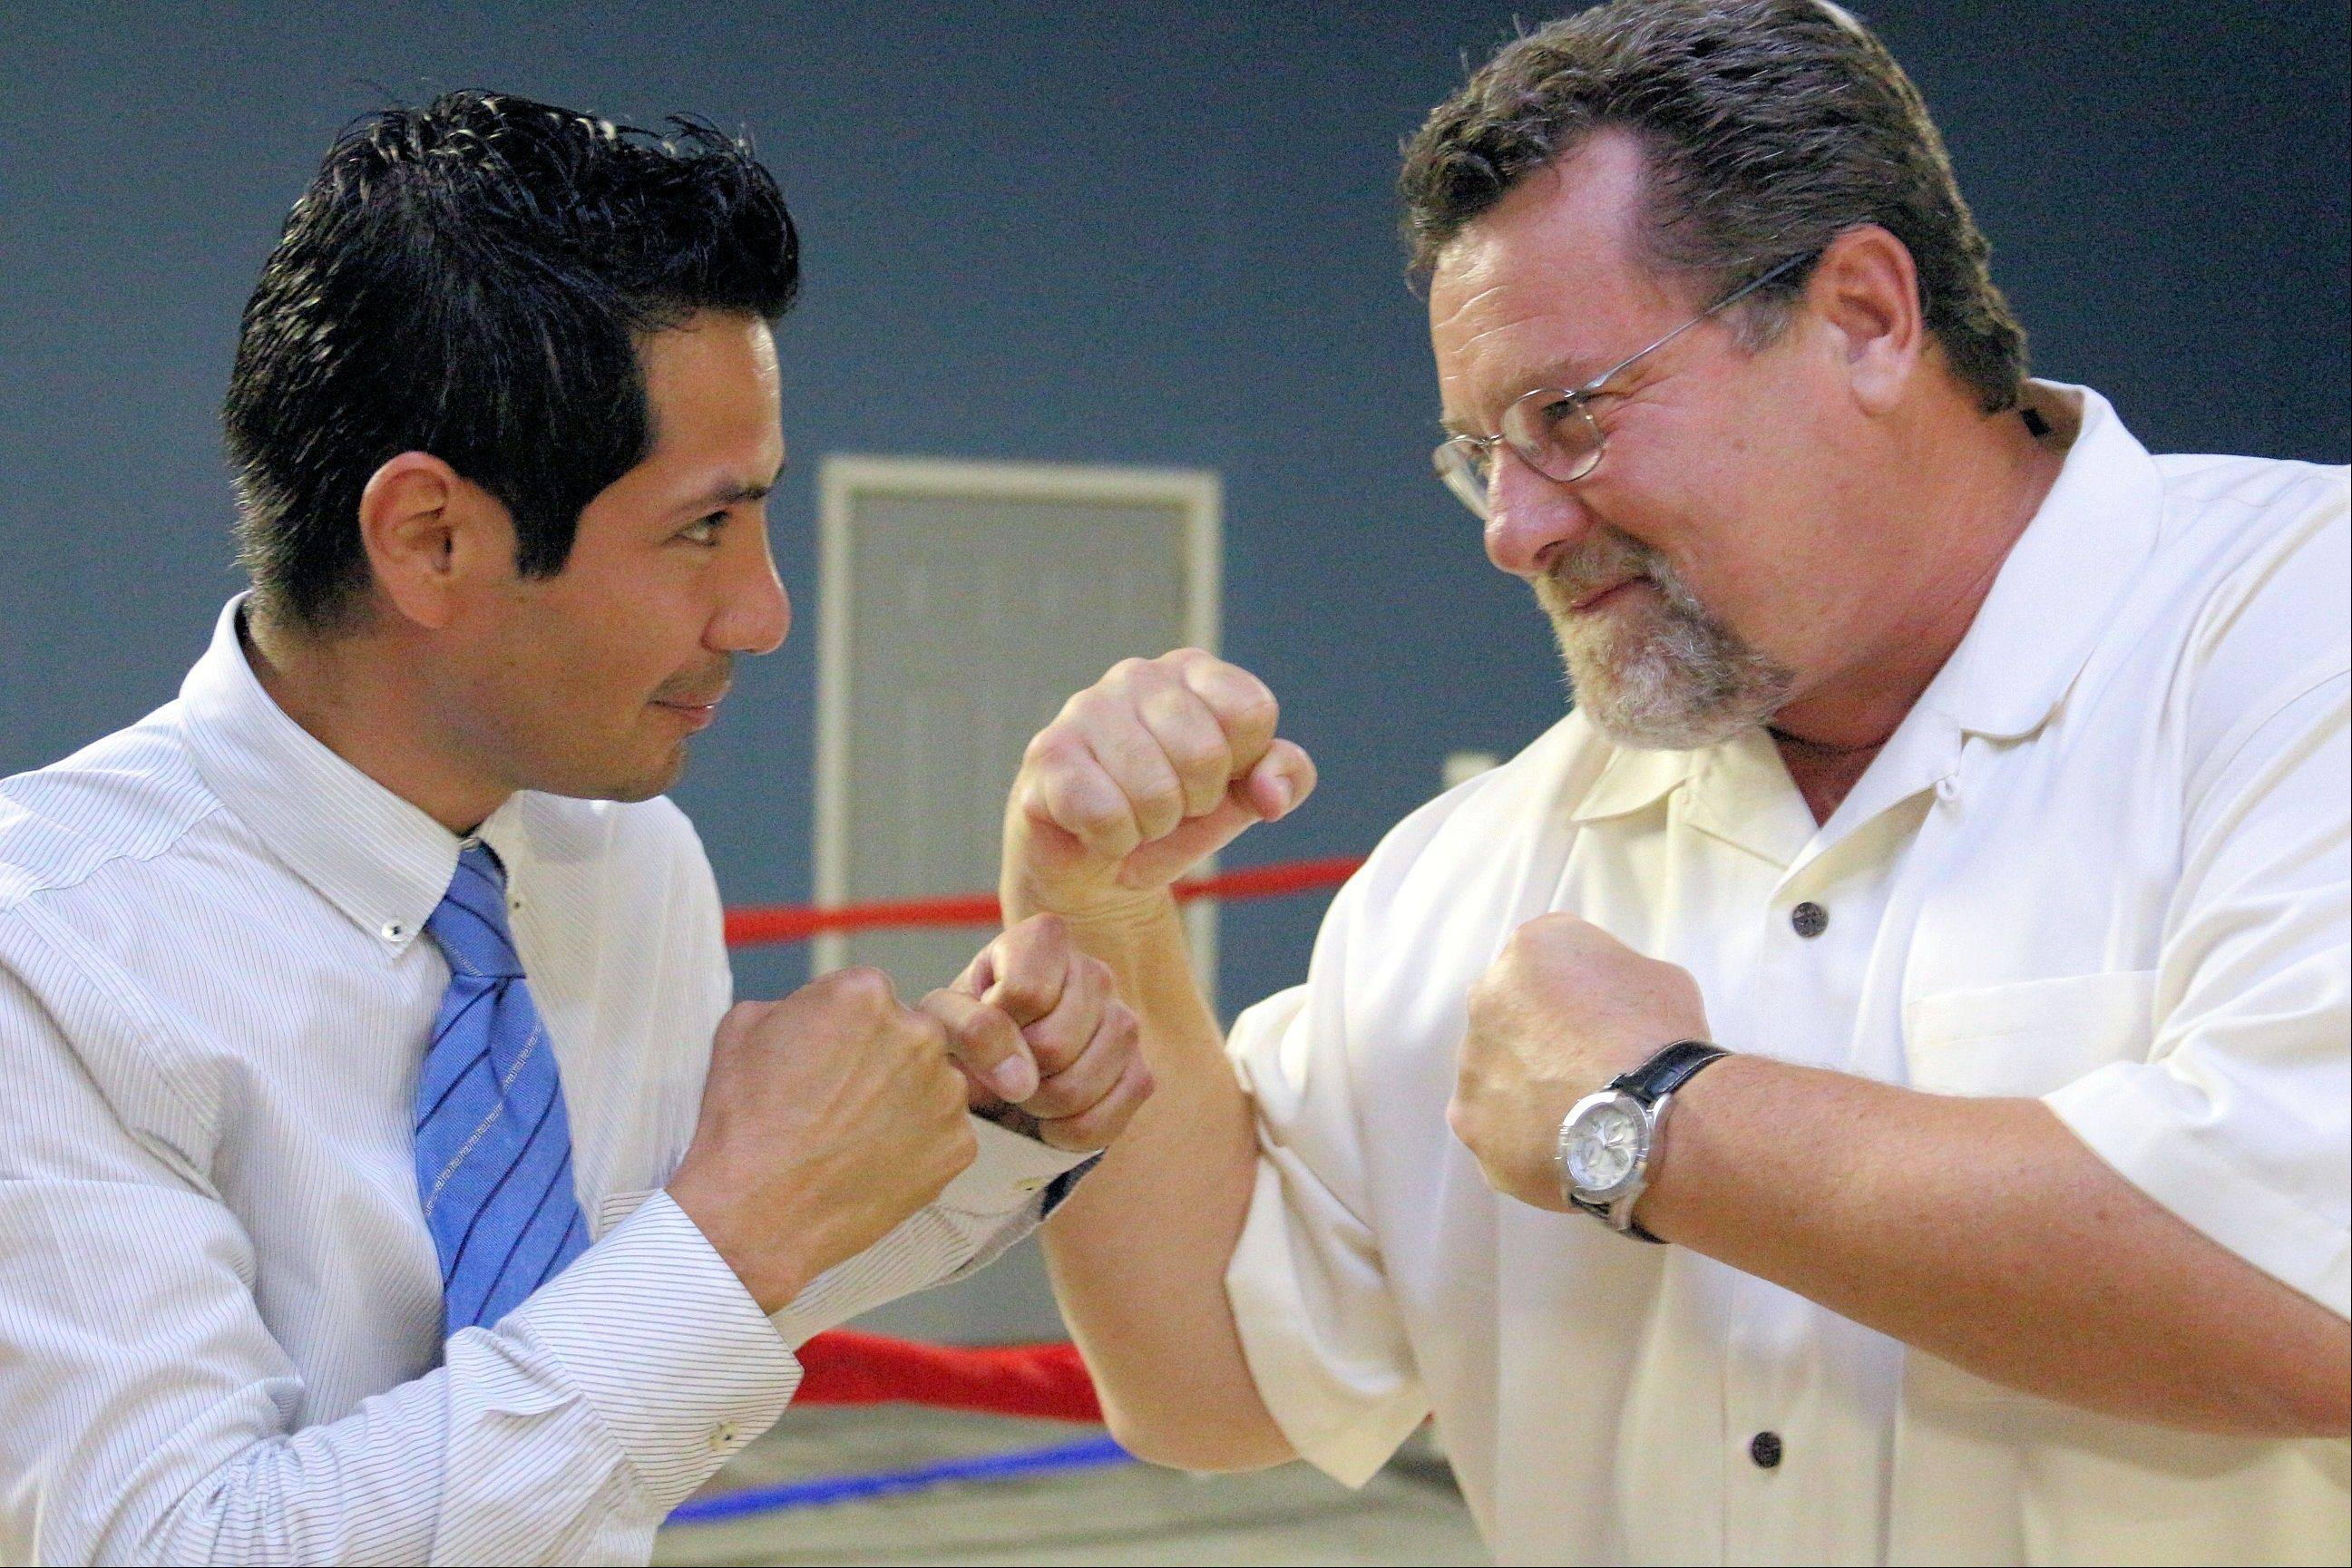 Jose Hernandez Jr. squares off with Round Lake Mayor Dan MacGillis. Hernandez grew up in the Round Lake area and has been boxing since he was 15.